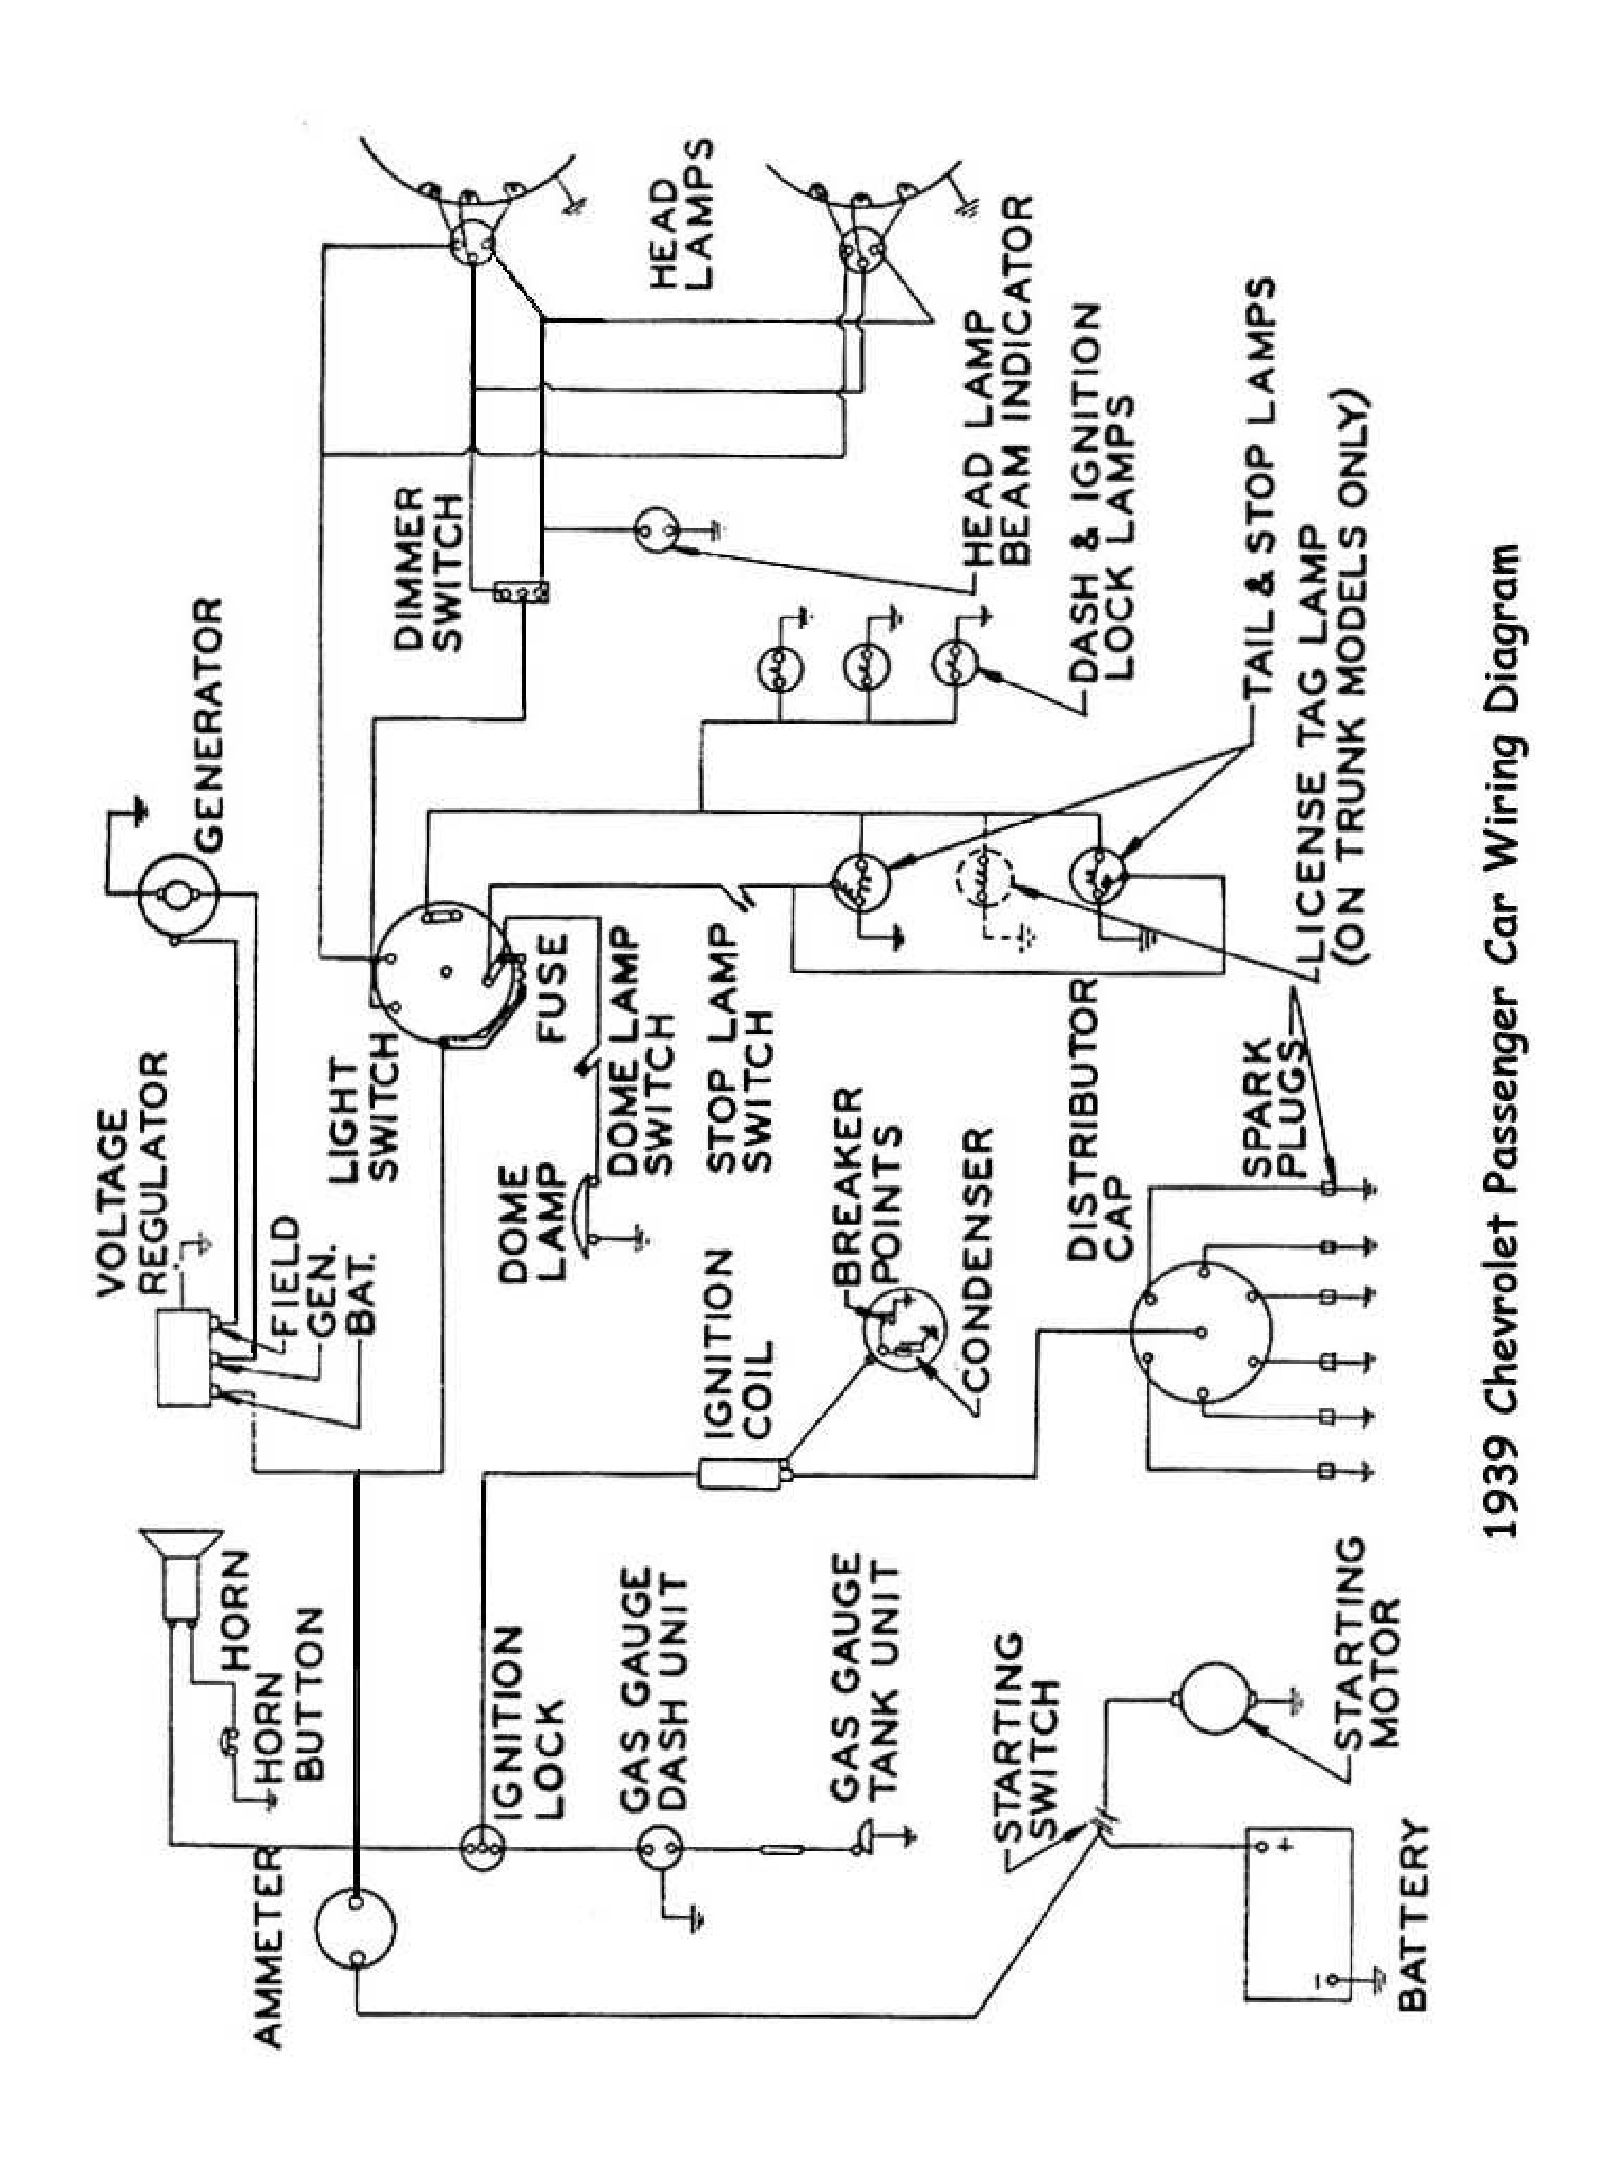 39car simple chevy wiring diagram chevy truck wiring \u2022 wiring diagrams chevy 350 ignition wiring diagram at crackthecode.co